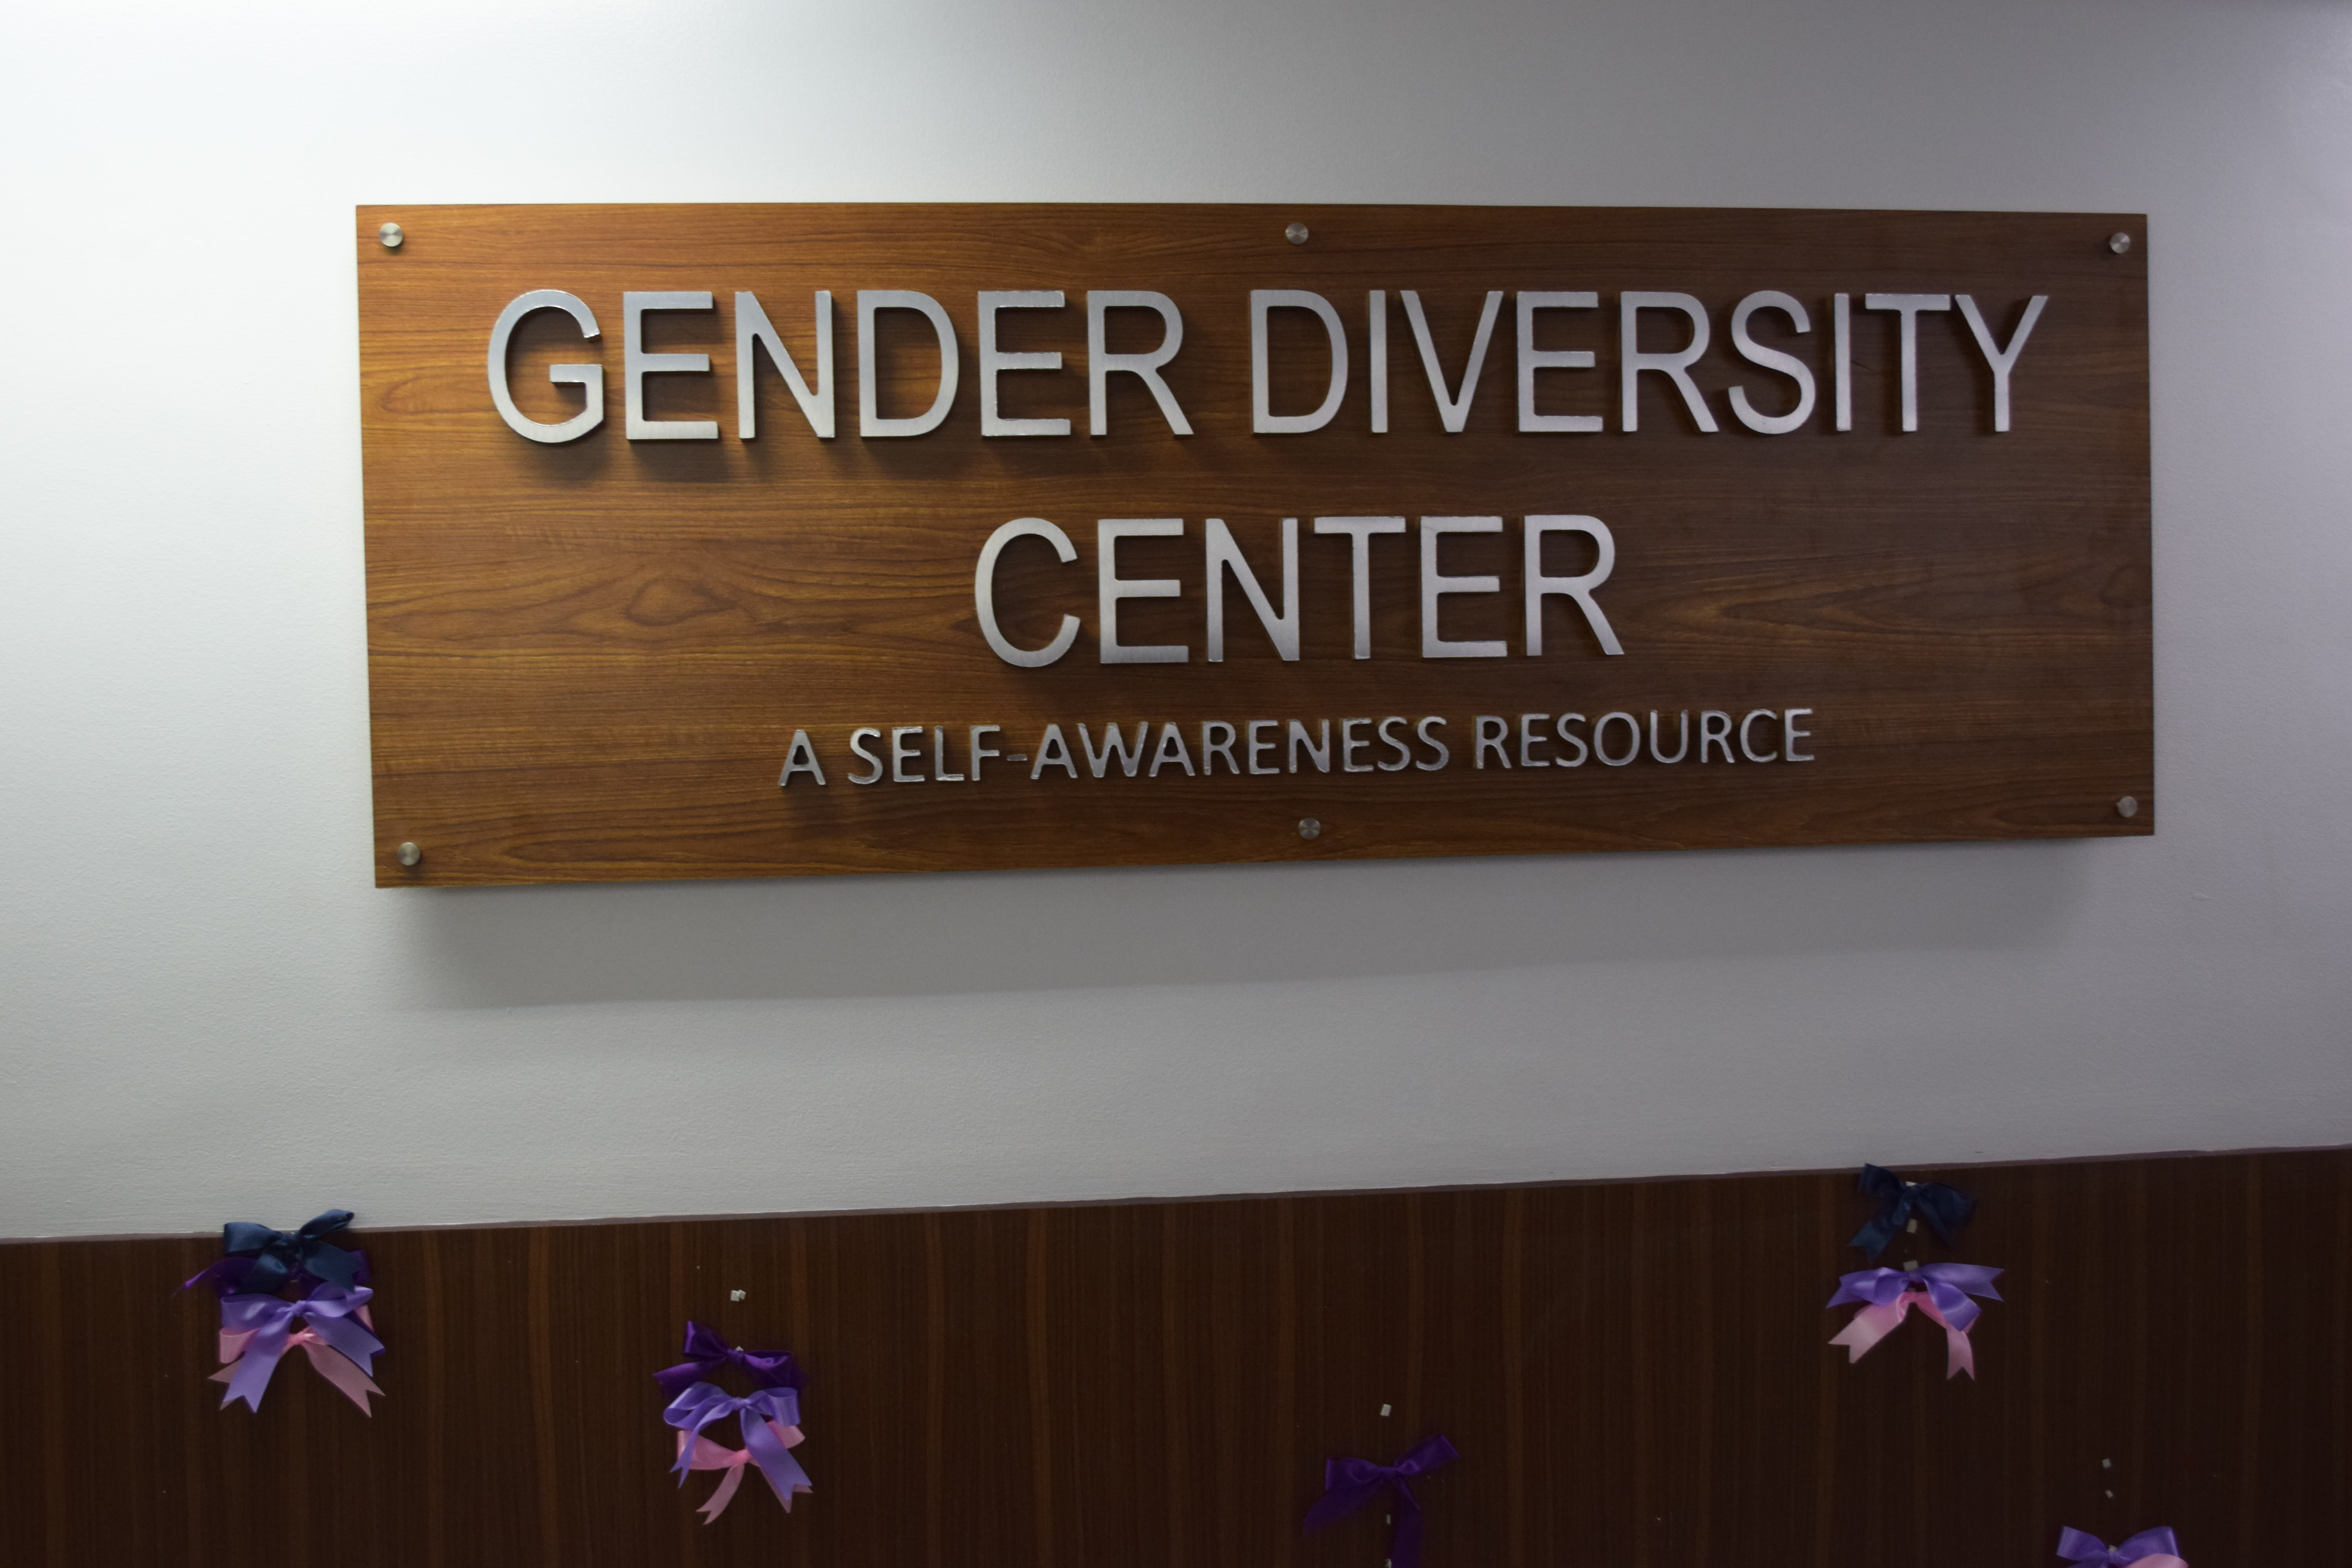 FIRST IN PH. The Gender Diversity Center gives the chance for the LGBT community to assess themselves.